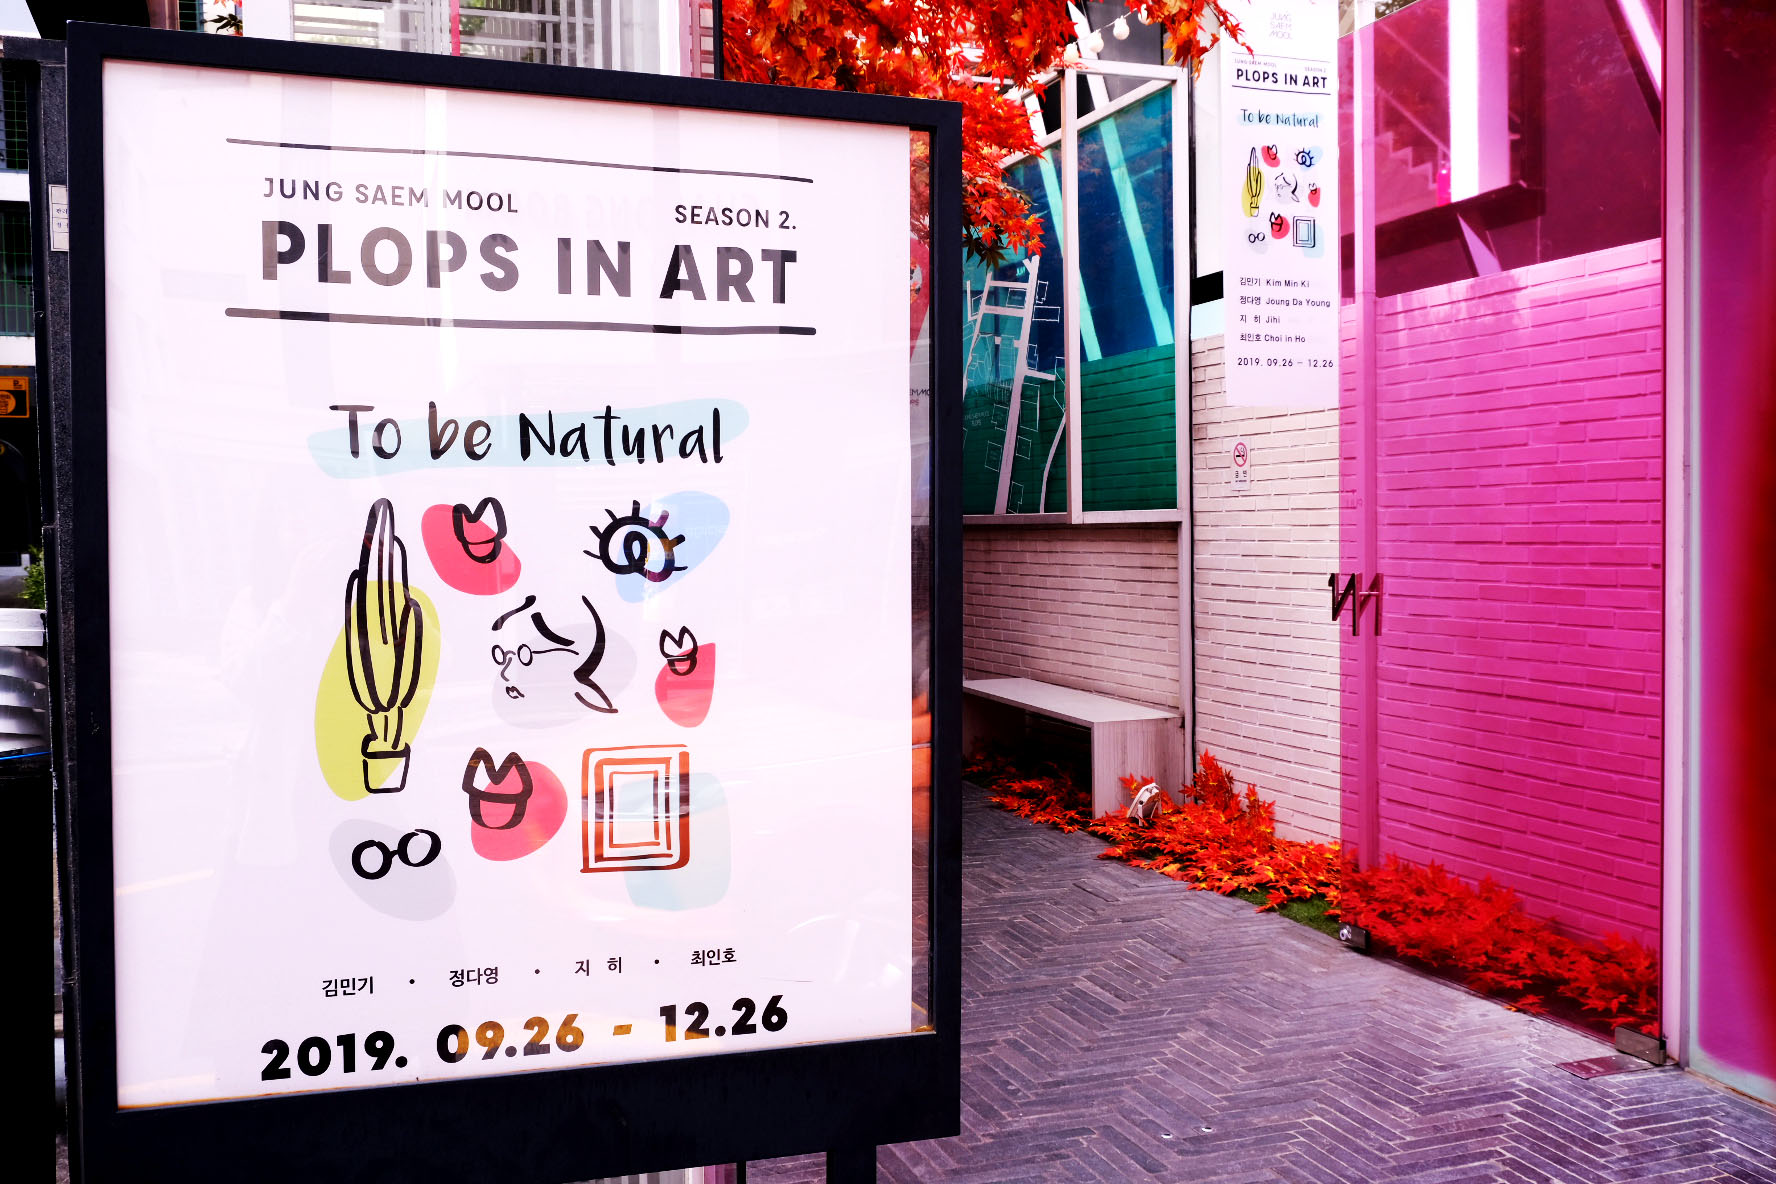 [Beauty X ART] JUNGSAEMMOOL Plops in art season2 exhibition planning